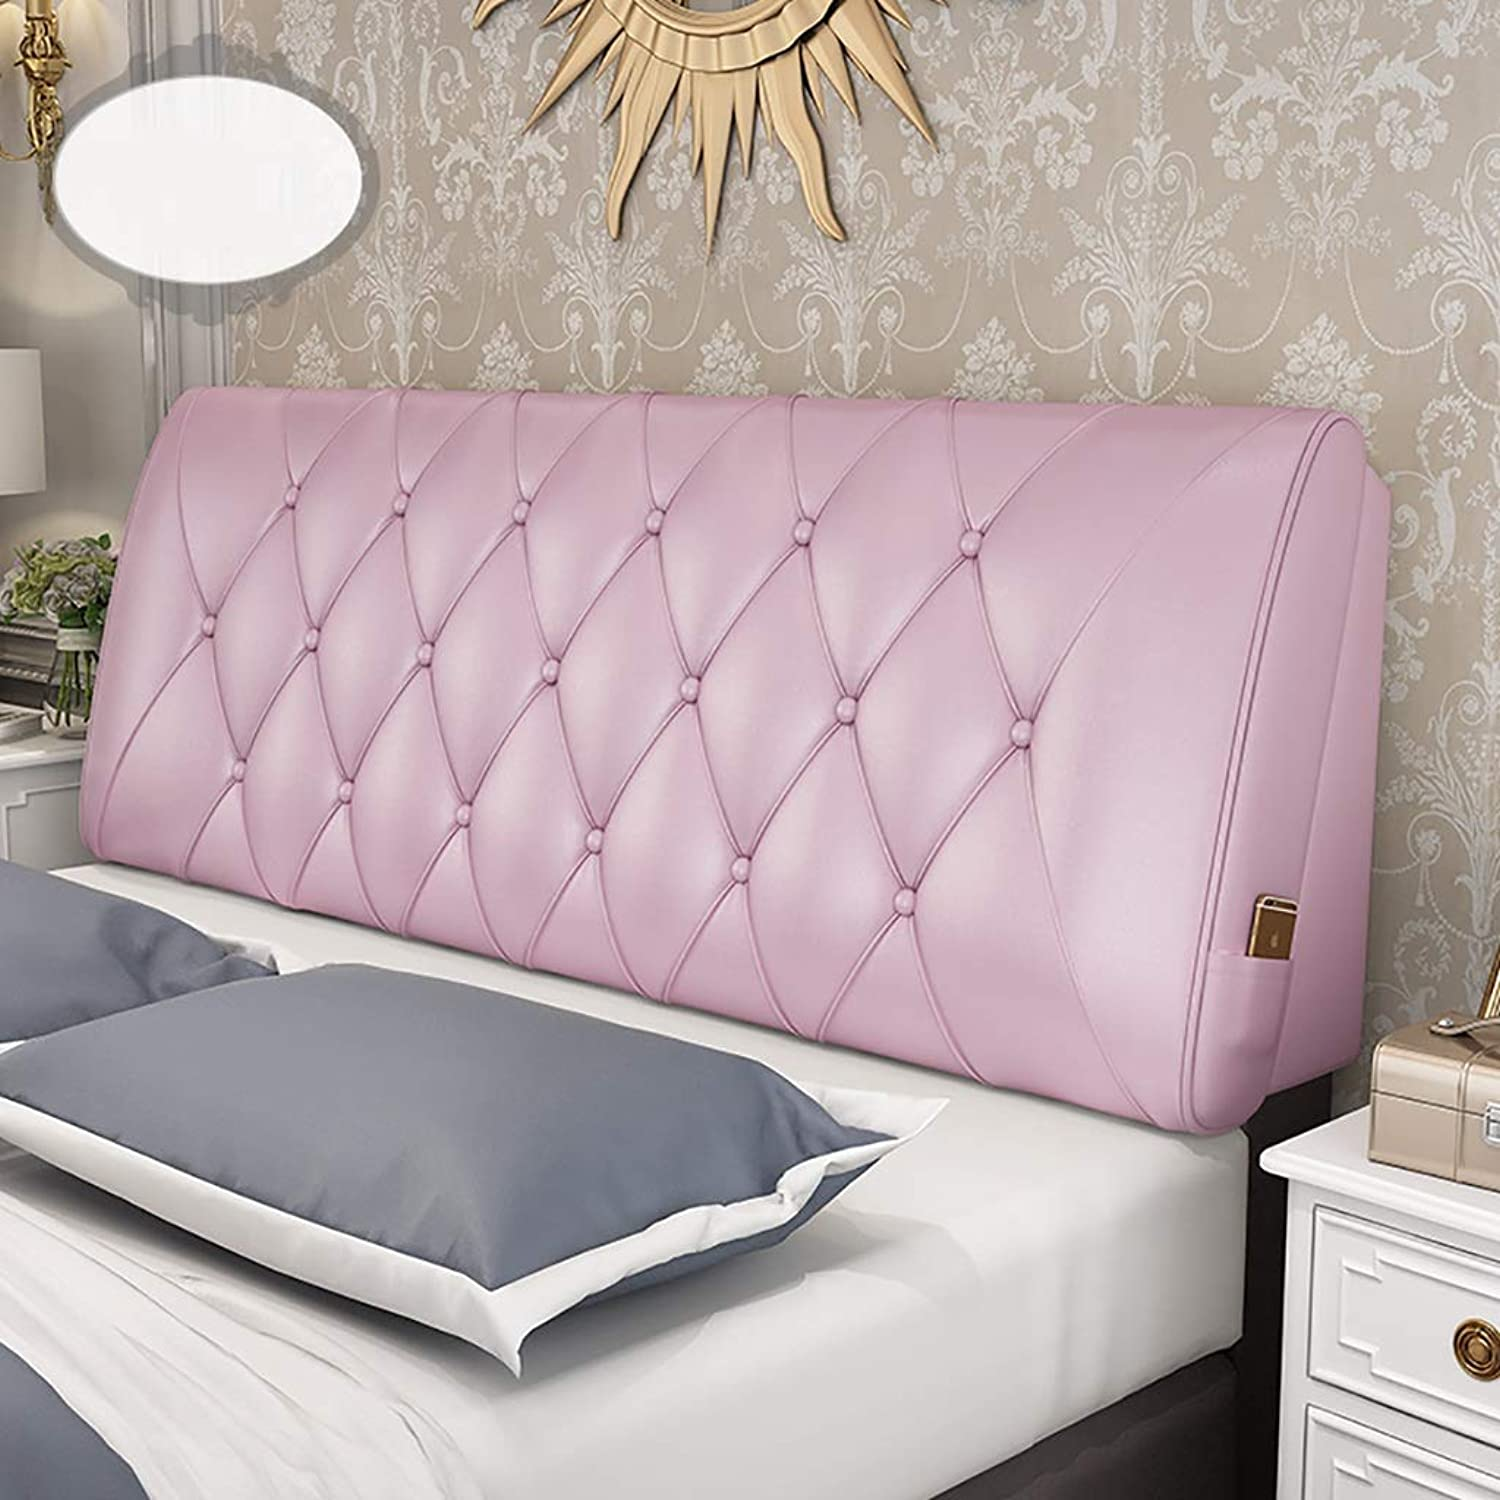 Headboard Bed Backrest Cushion Bed Cushion Bedside Pillow Without Headboard Leather Large Soft Pillow Lumbar Support 10 Solid colors 5 Sizes (color   Princess Pink, Size   120  58  10cm)